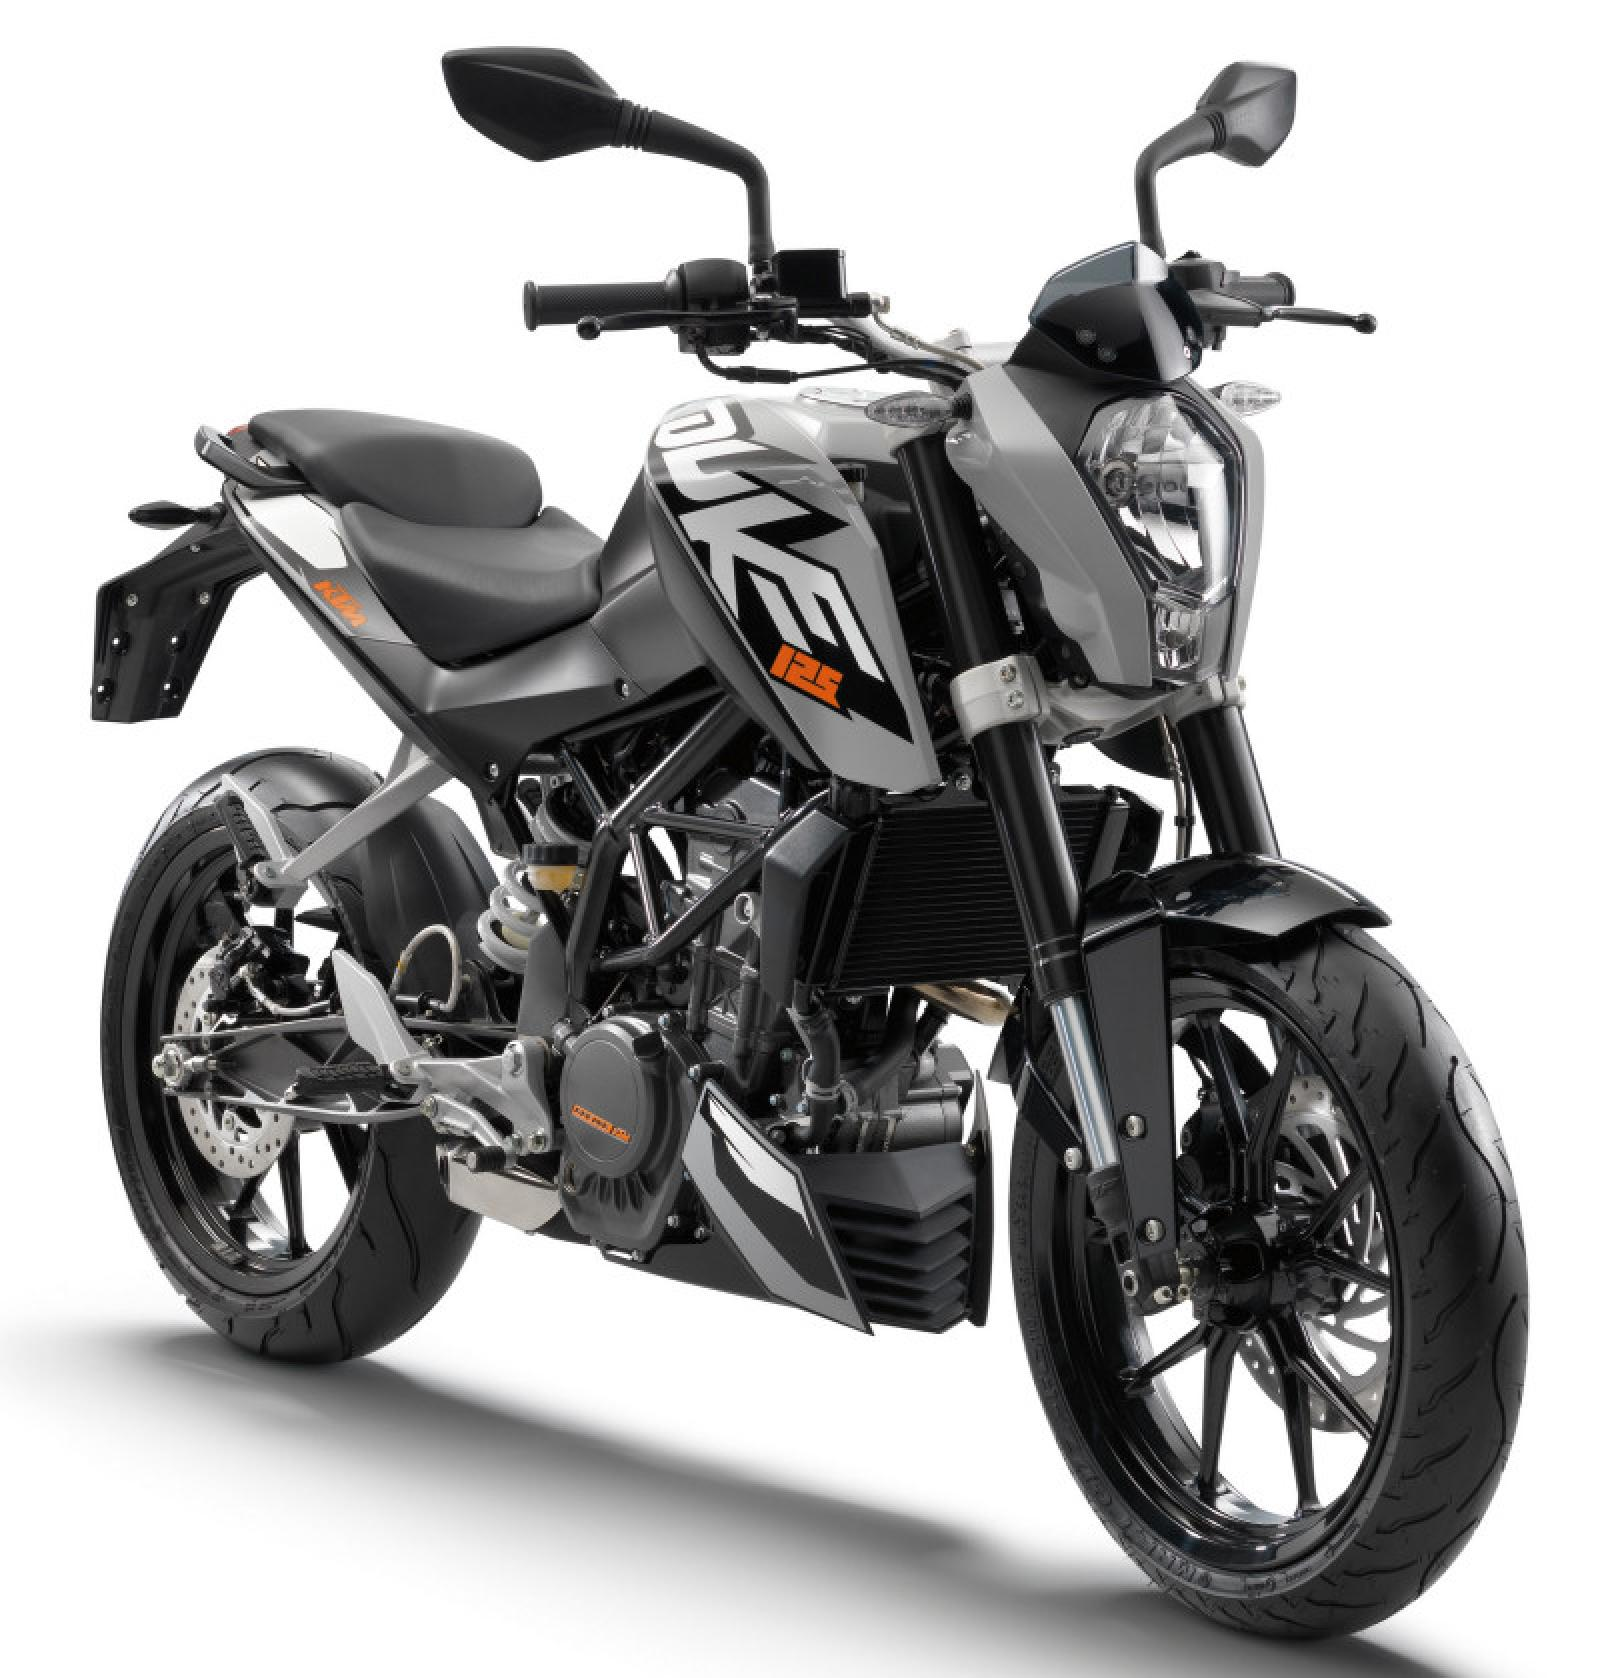 2013 ktm 125 duke moto zombdrive com. Black Bedroom Furniture Sets. Home Design Ideas